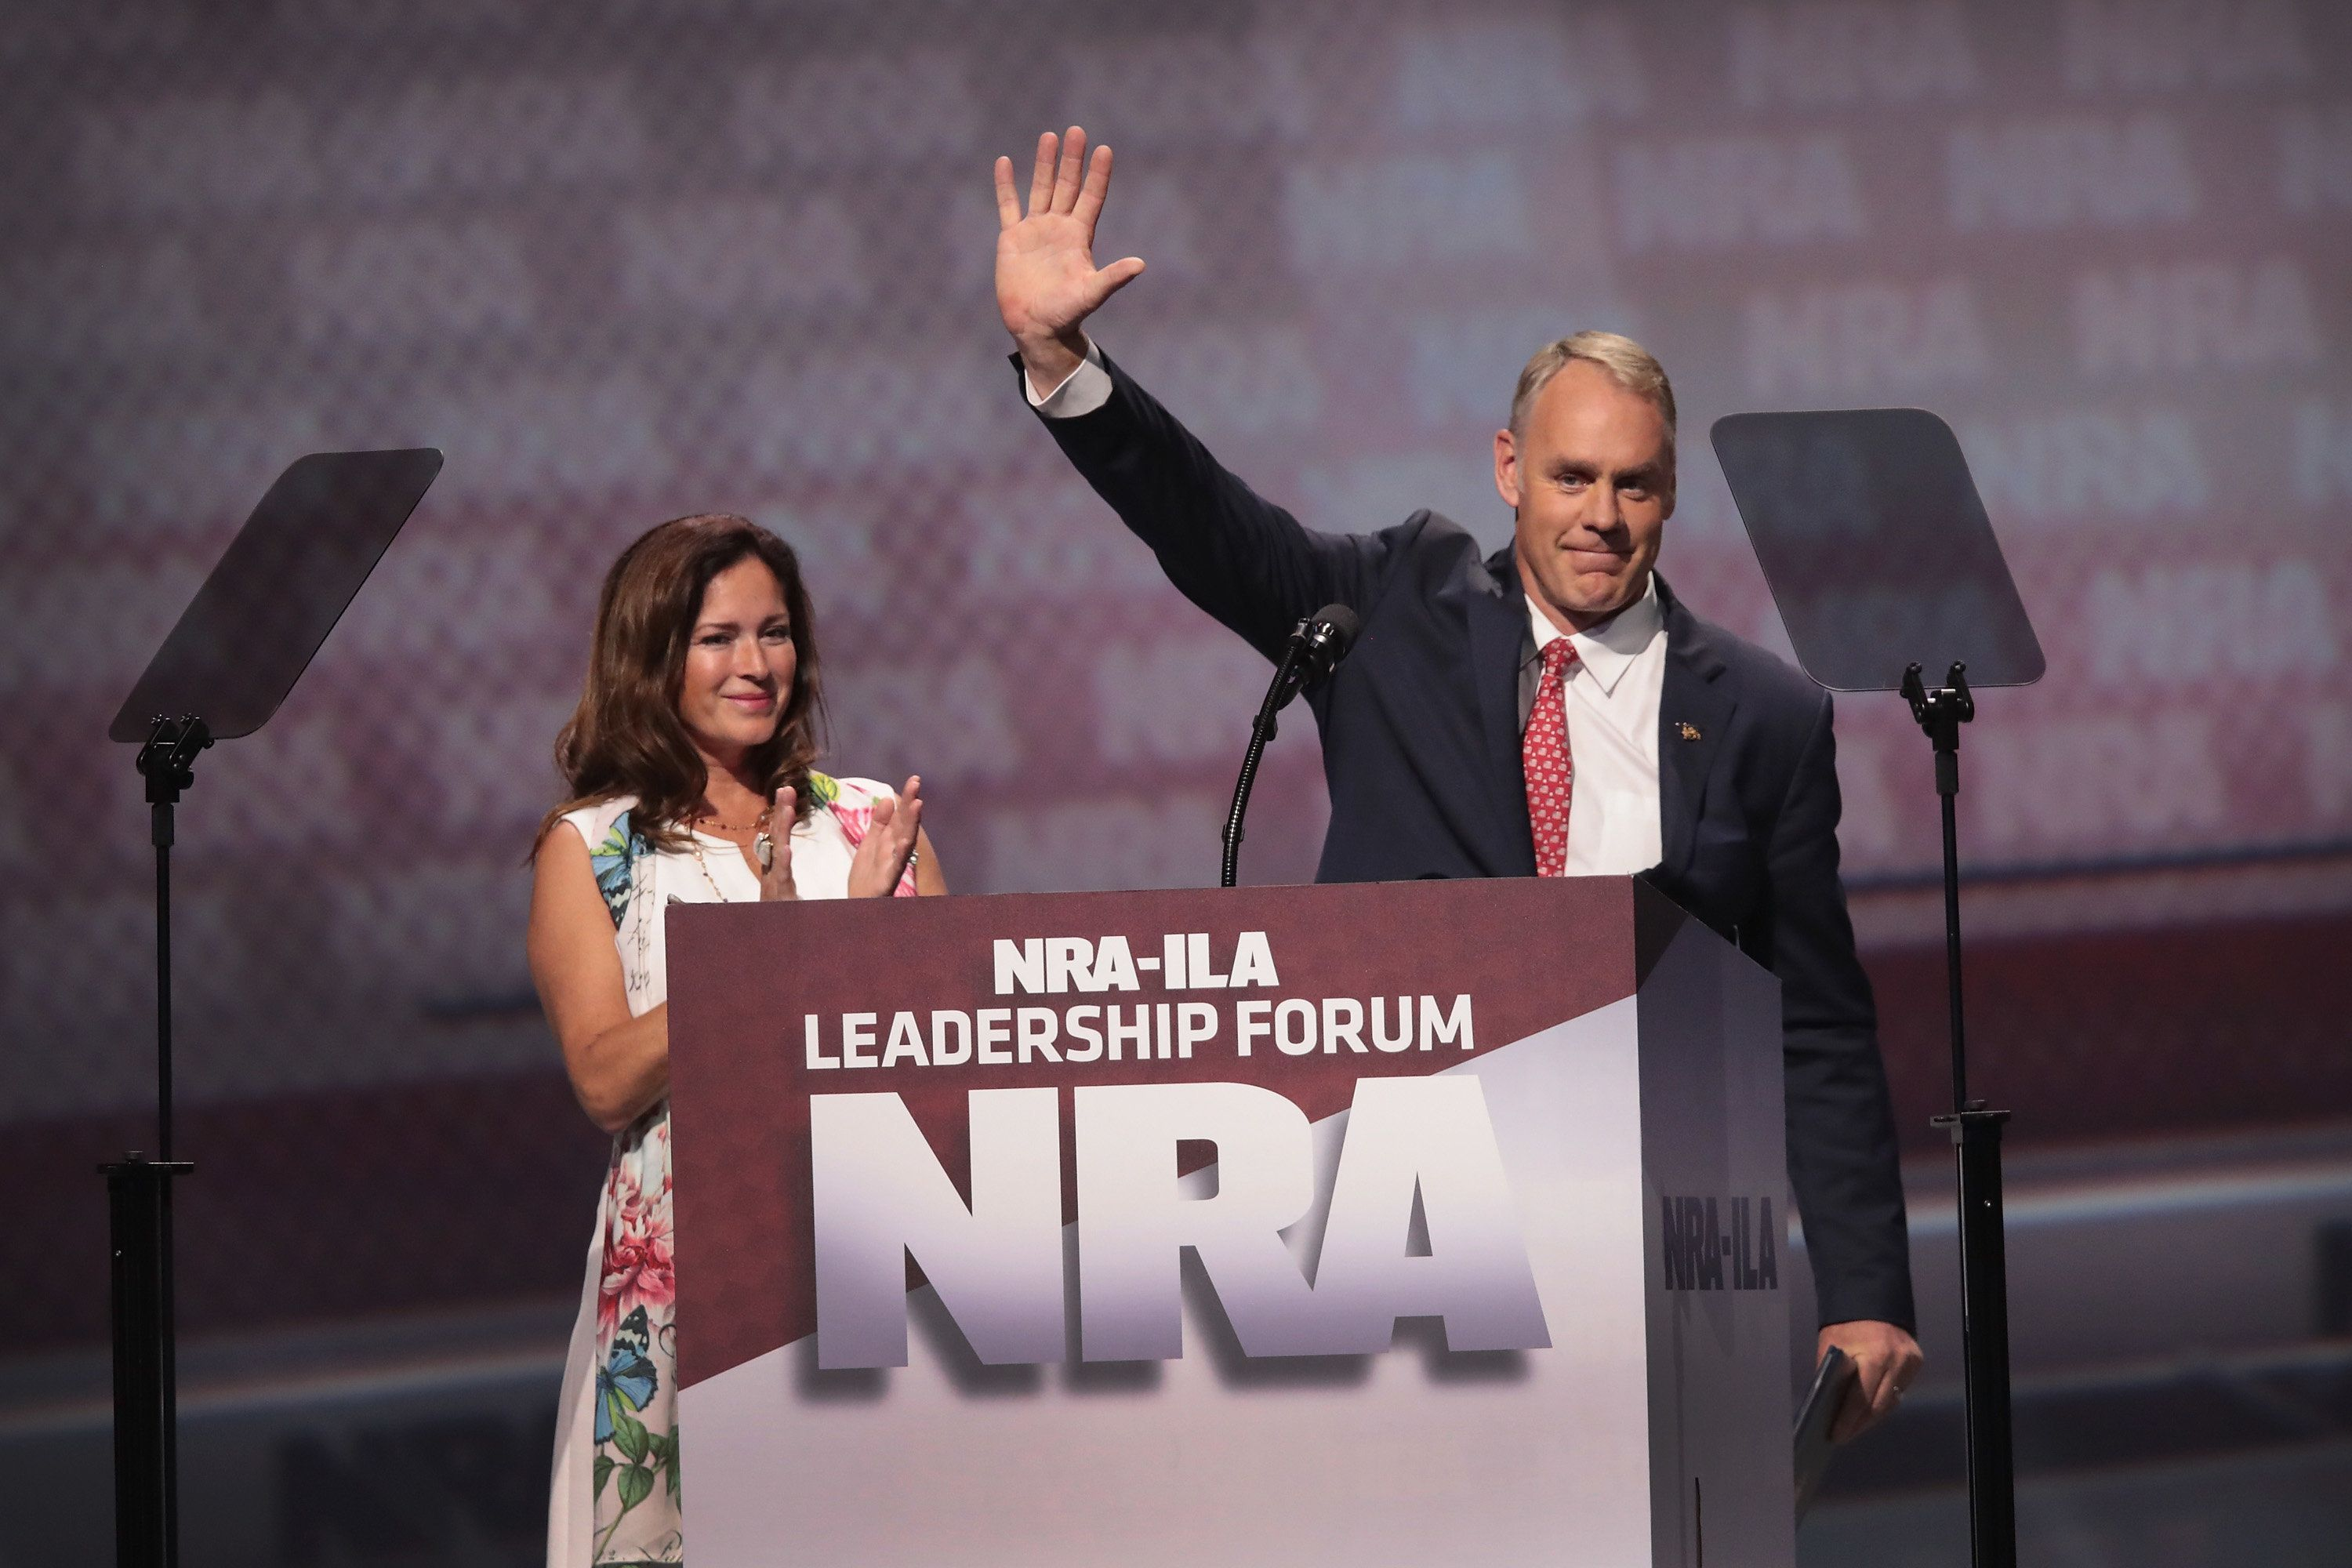 Then–Secretary of the Interior Ryan Zinke,with his wife, Lolita Zinke,at an April 2017 NRA forumin At